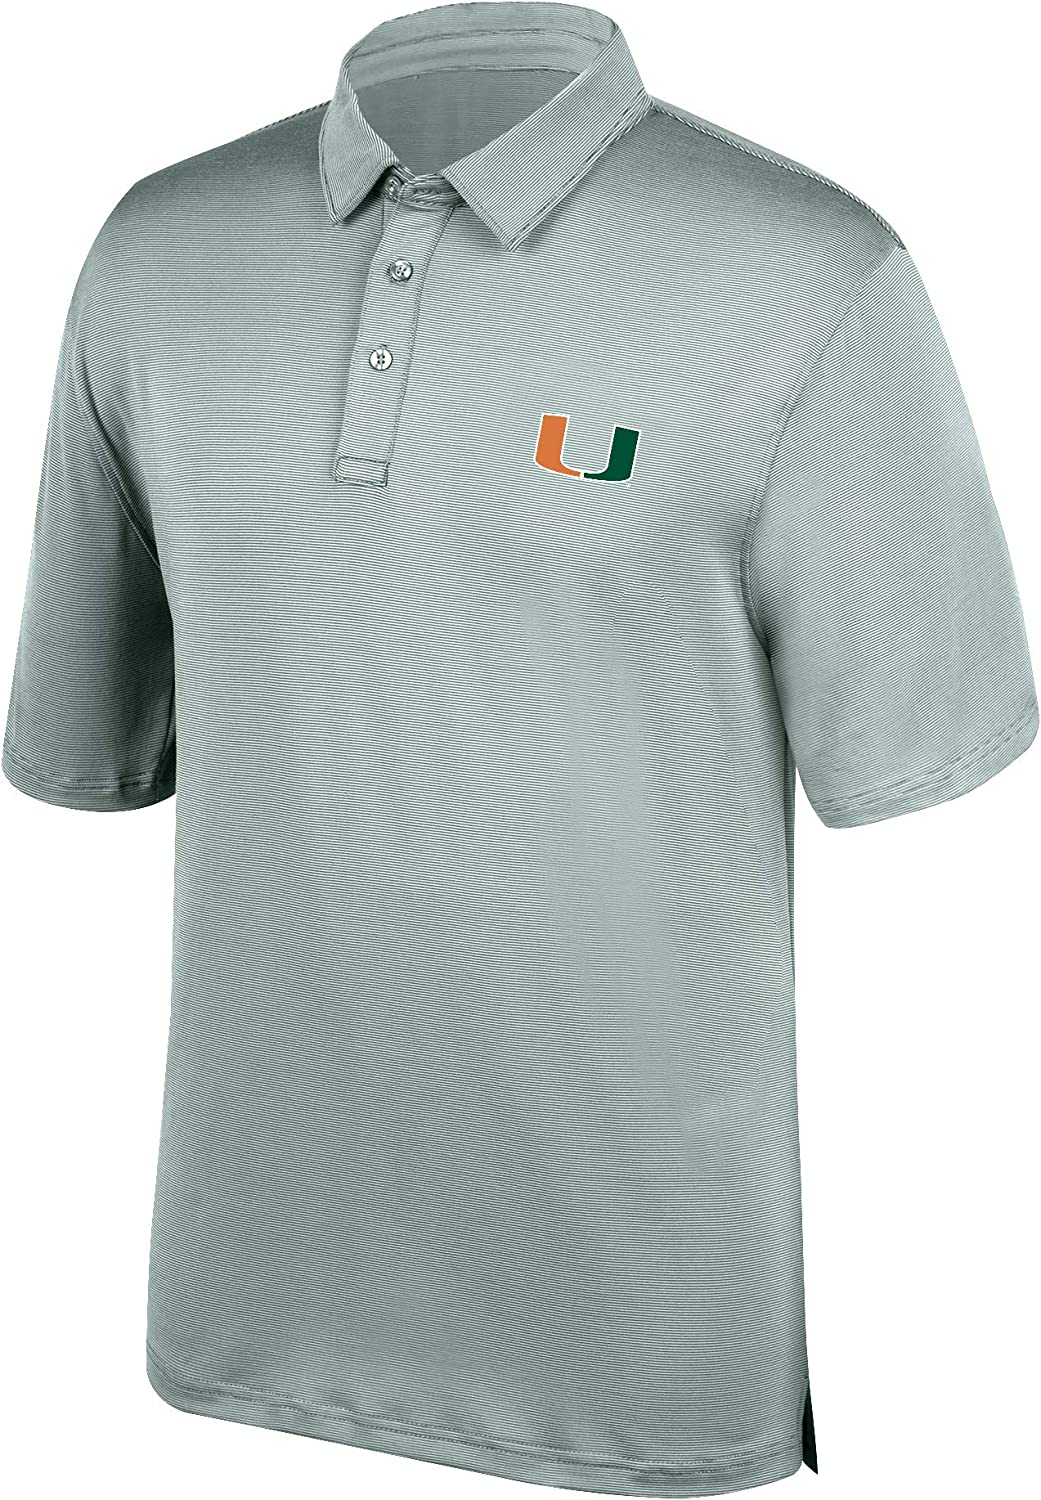 J America NCAA Men's Miami Hurricanes Yarn Dye Striped Team Polo Shirt, Large, Forest Green